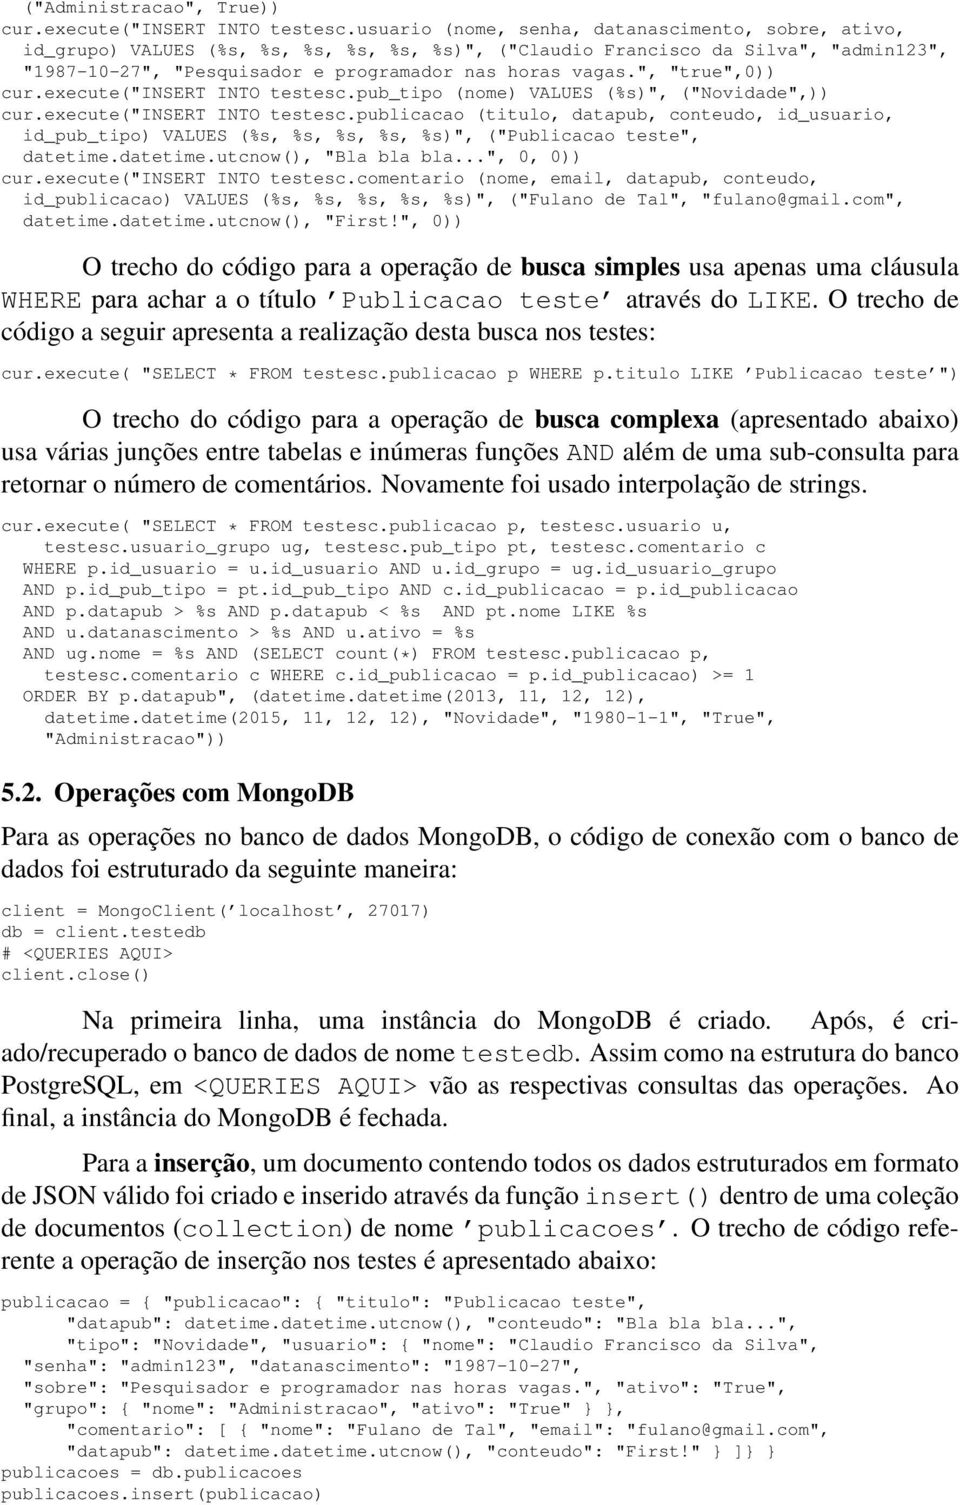 """, ""true"",0)) cur.execute(""insert INTO testesc.pub_tipo (nome) VALUES (%s)"", (""Novidade"",)) cur.execute(""insert INTO testesc.publicacao (titulo, datapub, conteudo, id_usuario, id_pub_tipo) VALUES (%s, %s, %s, %s, %s)"", (""Publicacao teste"", datetime."